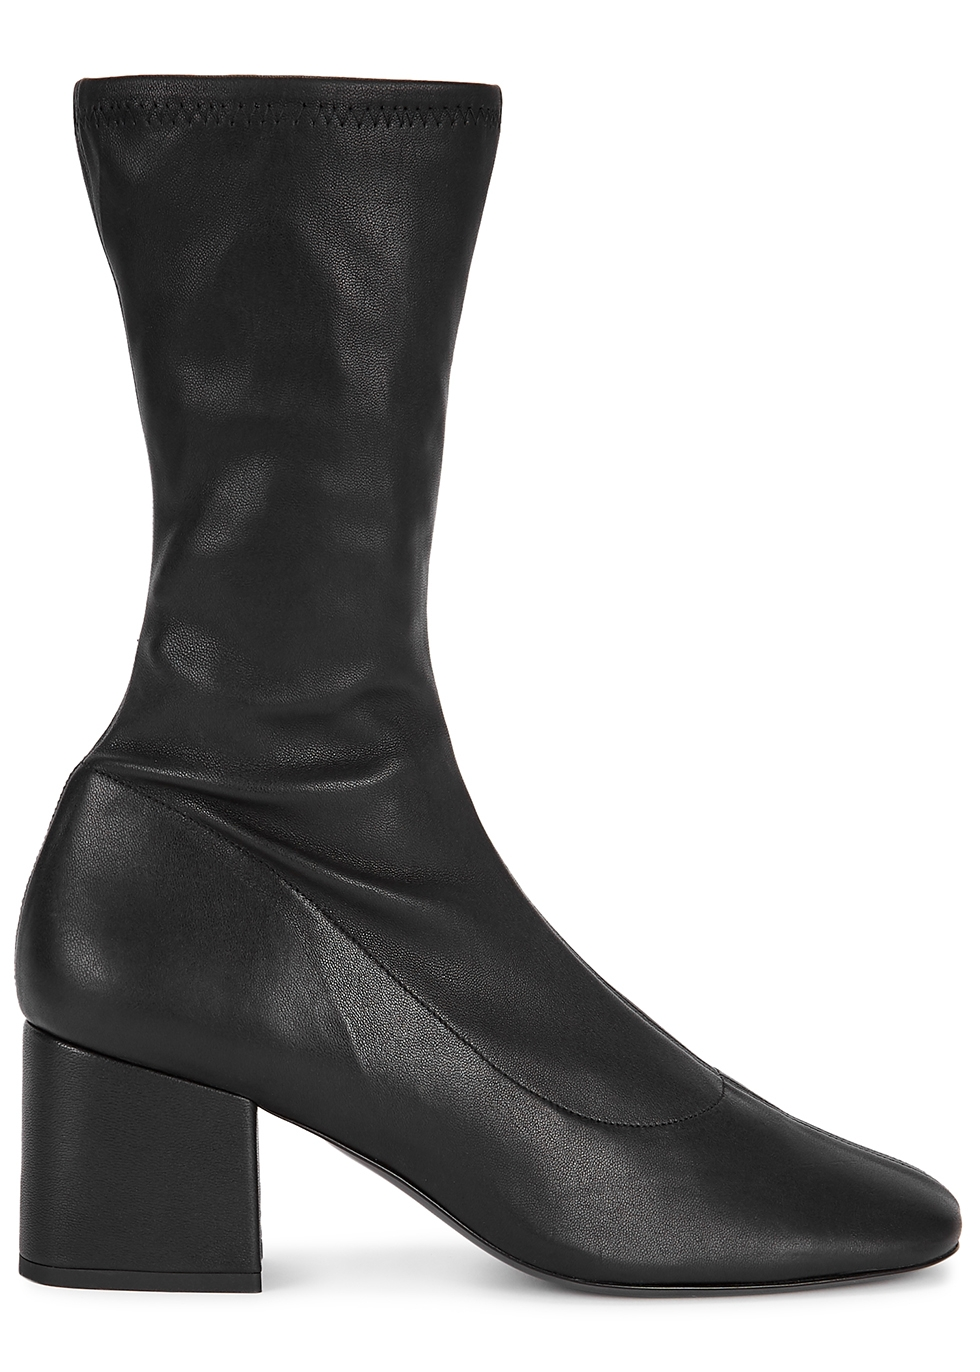 Carlos 60 black leather sock boots